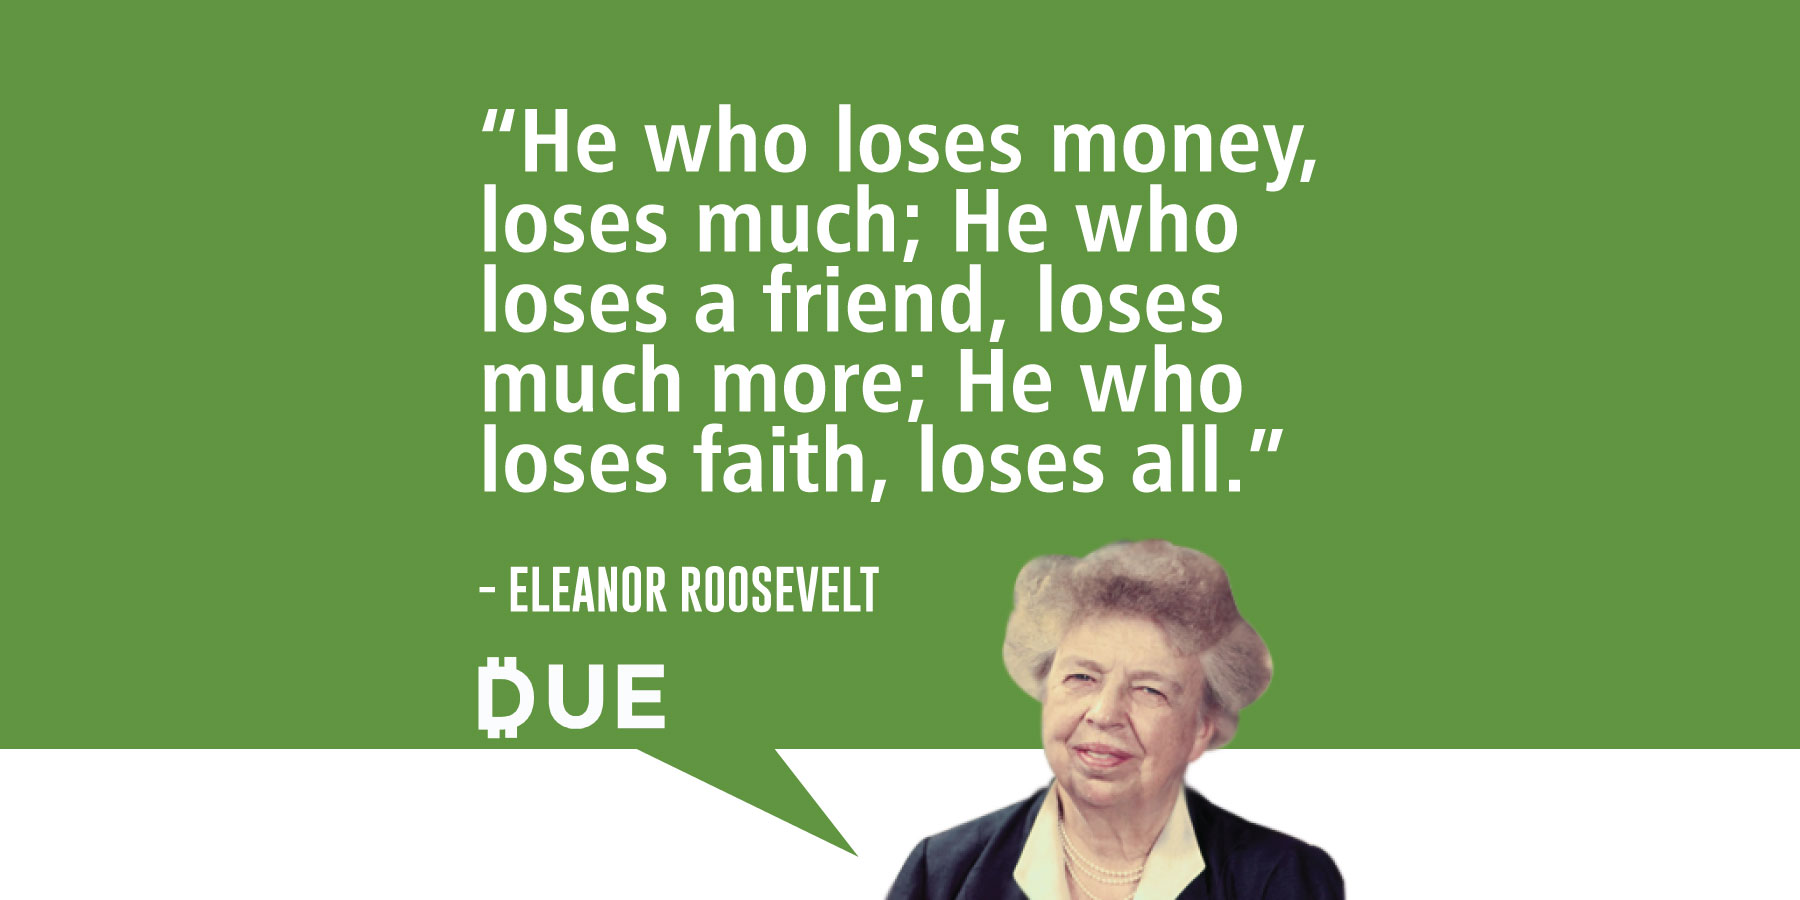 Eleanor Roosevelt Quote - Keeping Your Priorities Straight